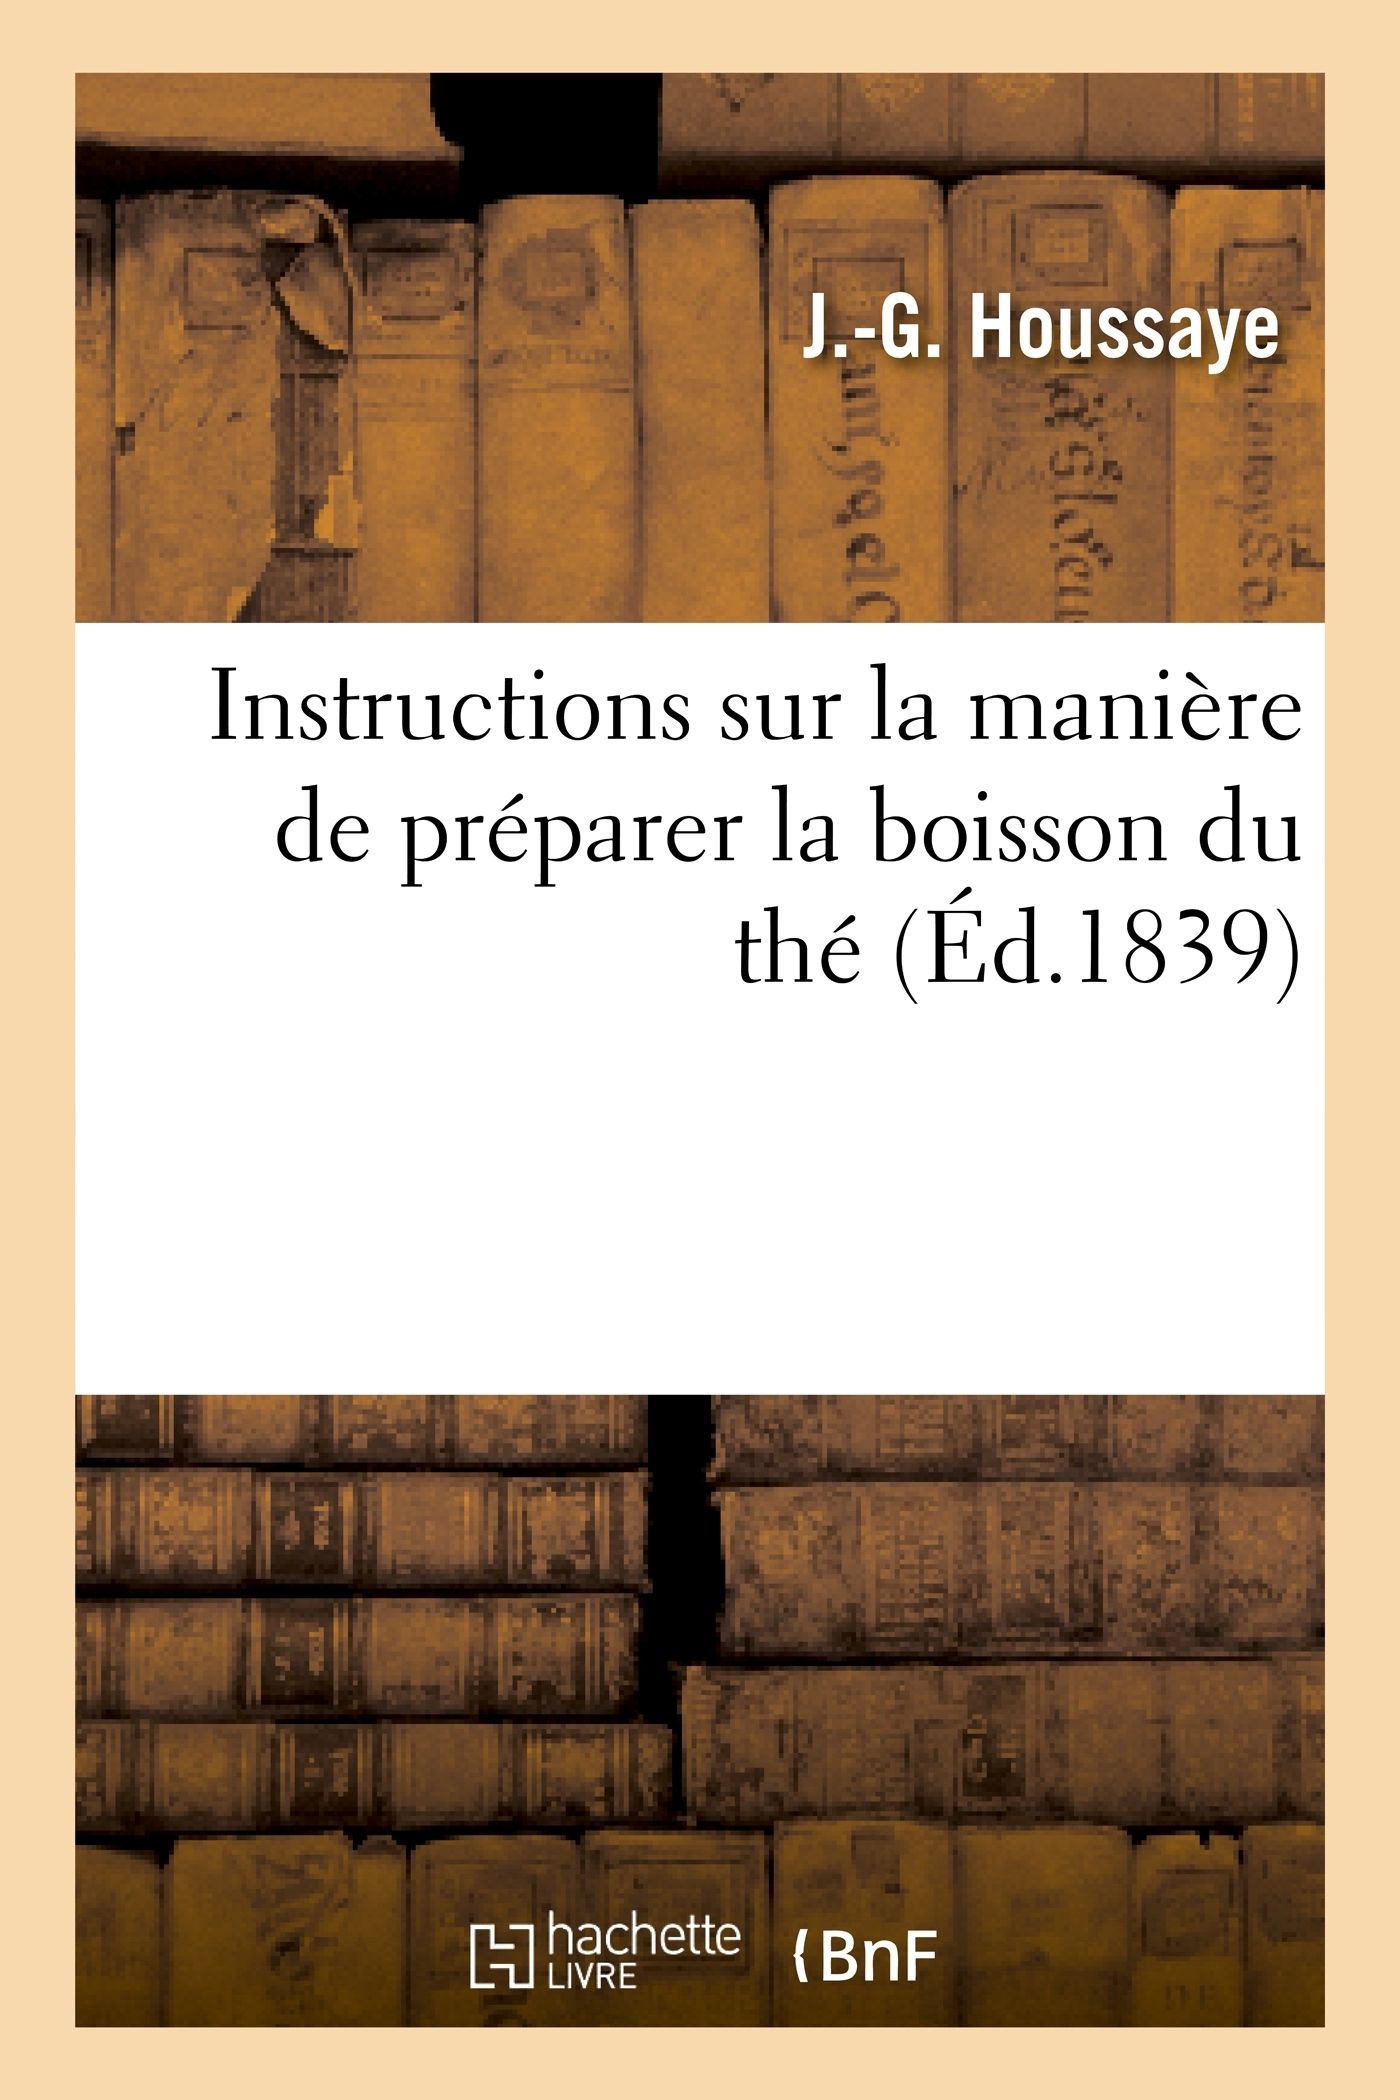 INSTRUCTIONS SUR LA MANIERE DE PREPARER LA BOISSON DU THE